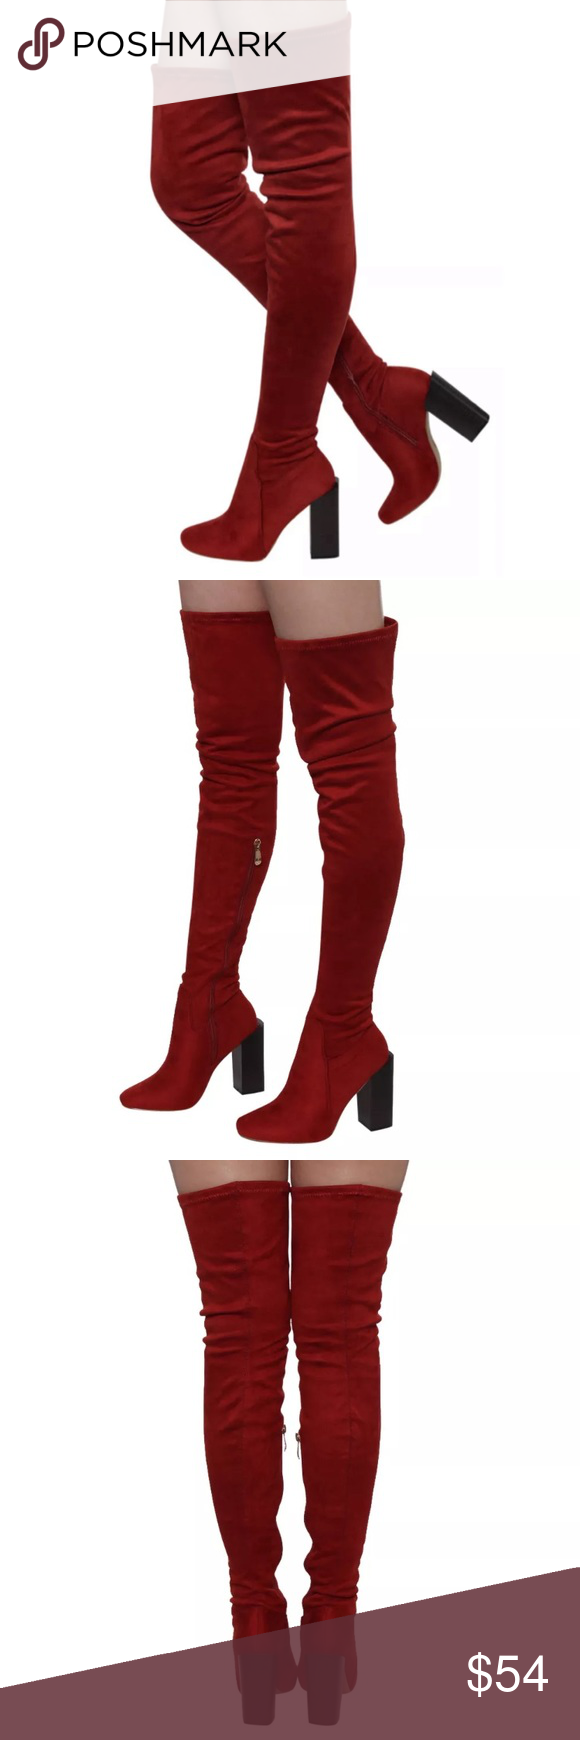 5e91c716fcf Rust Suede Thigh High Boots! NEW! Runs 1 2 size small - therefore size 7  listed as size 6.5. Rust vegan suede. Inside zip and tie top. Heel height 4  inches.